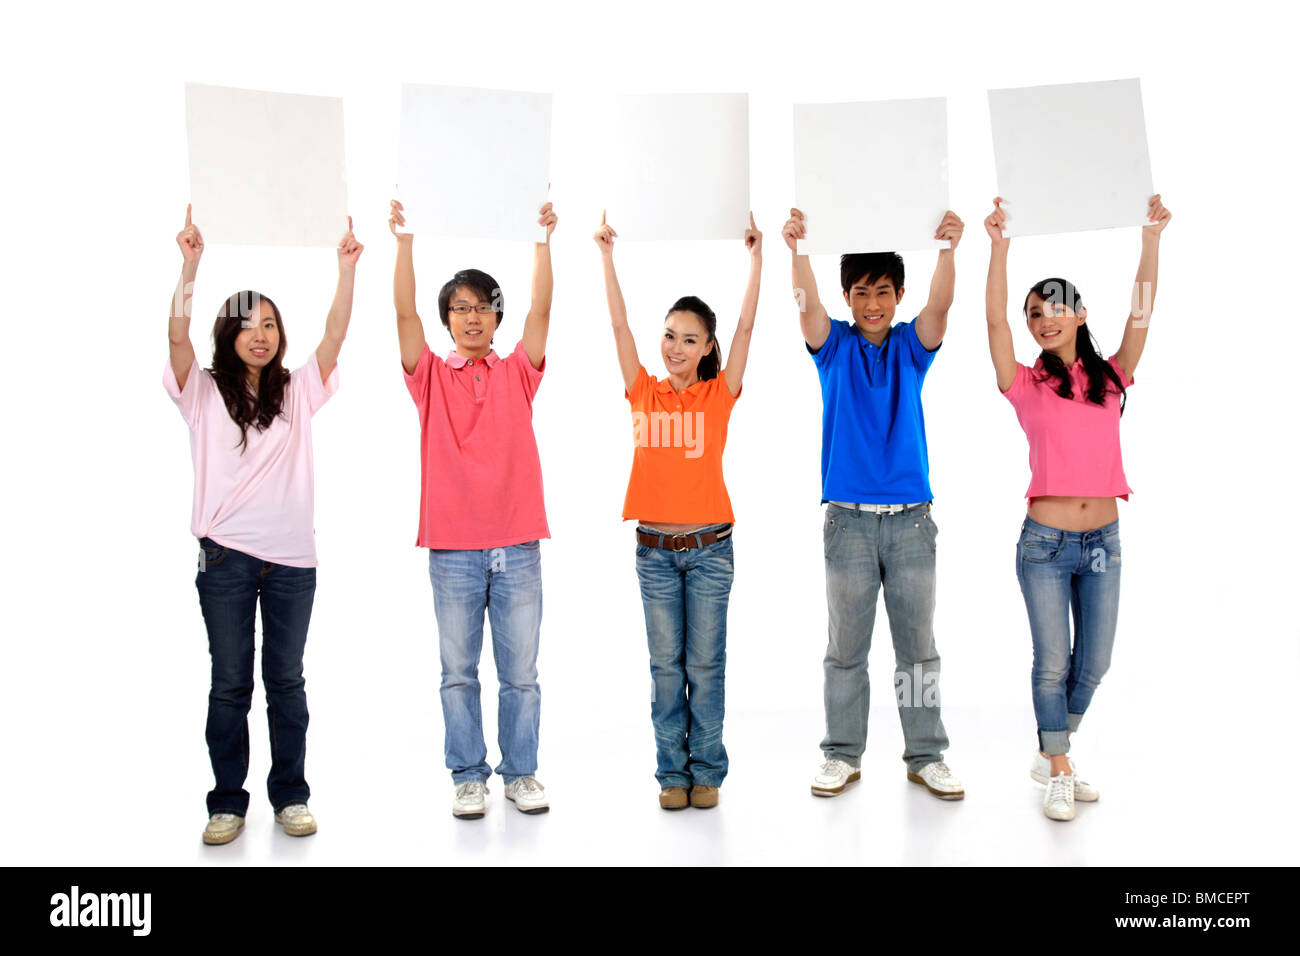 Group of people holding blank cardboards - Stock Image